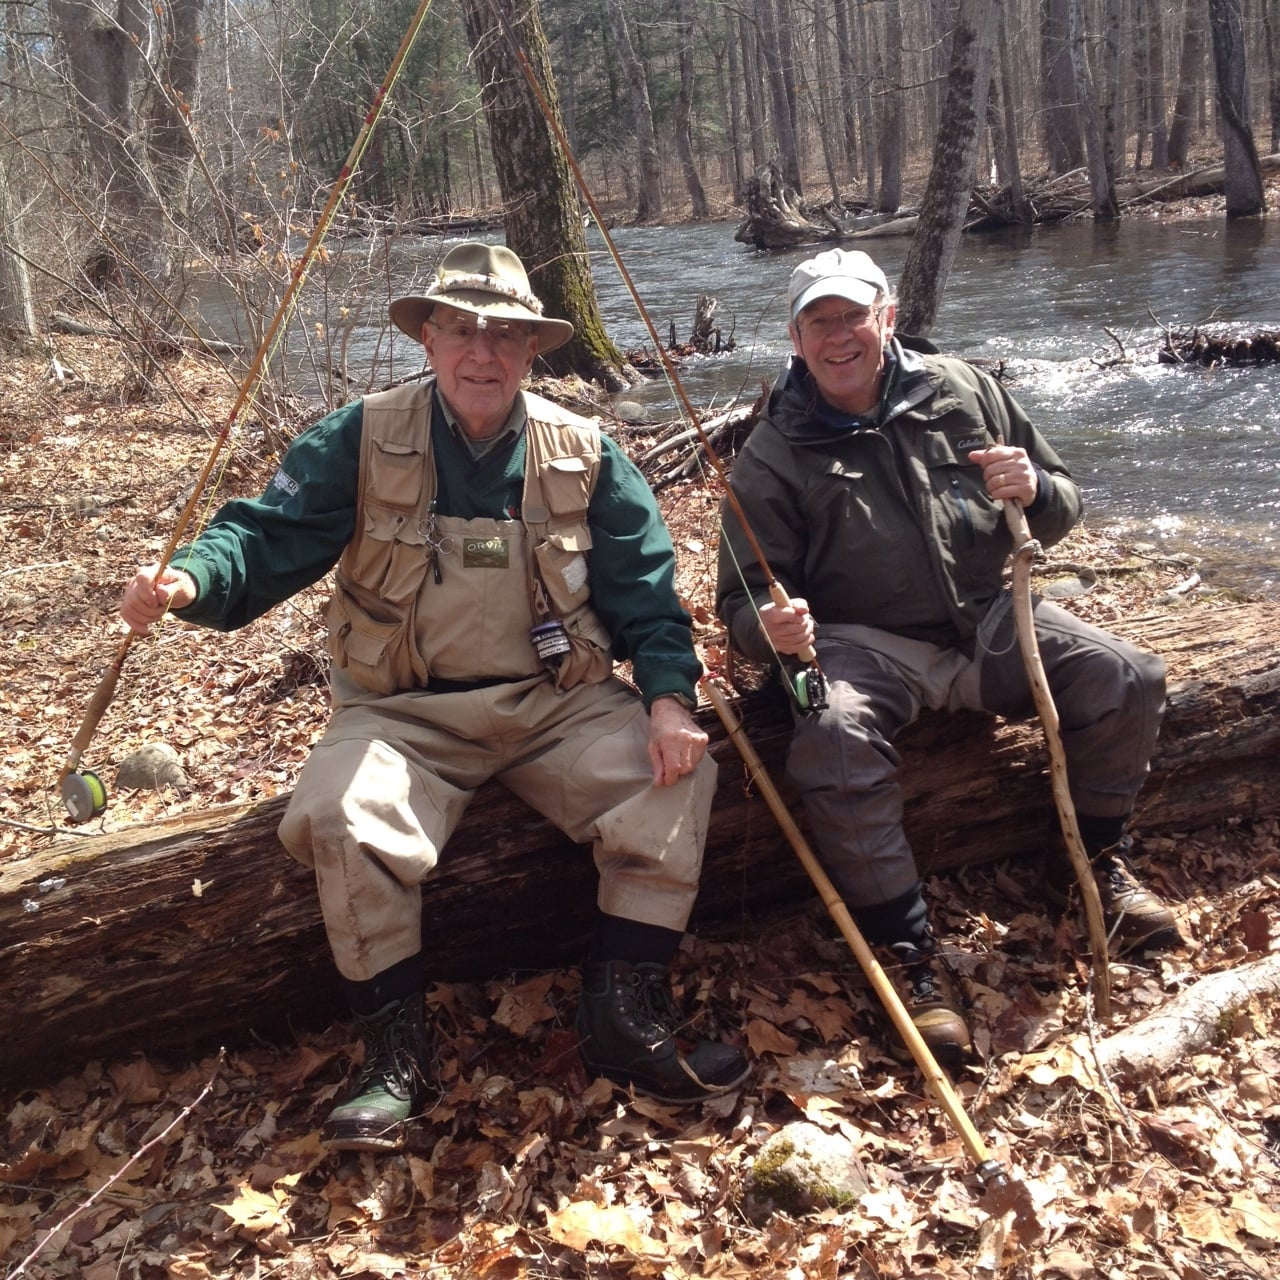 John out fishing with Rich Tullo on what must have been a glorious day.